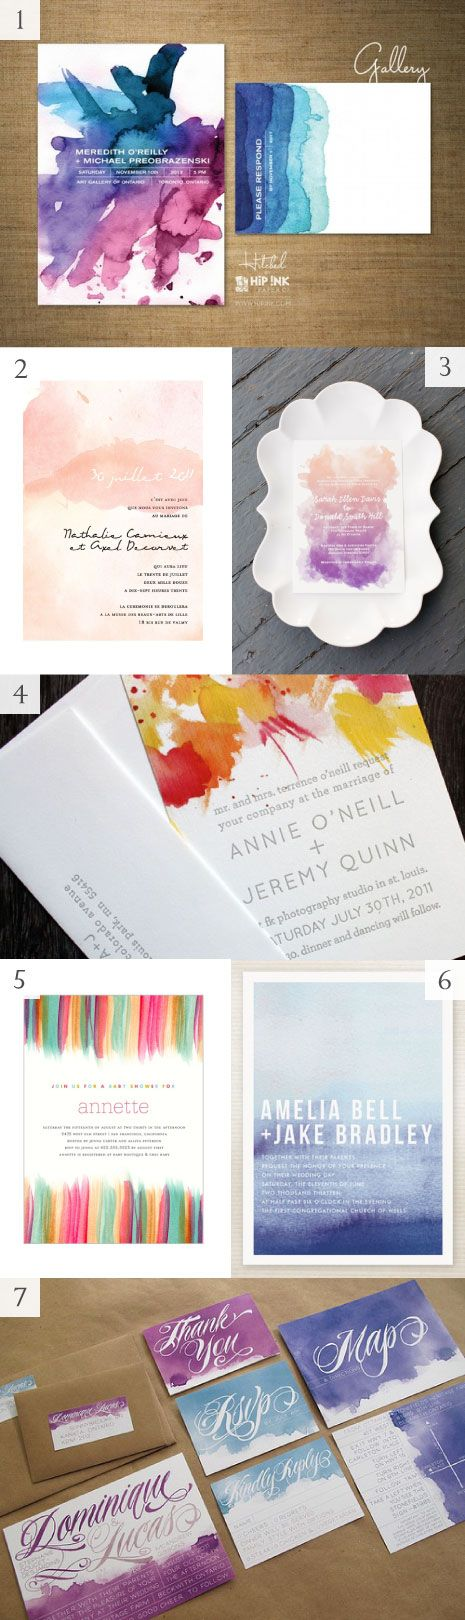 watercolor wedding invitations (or stationary, thank yous etc.)